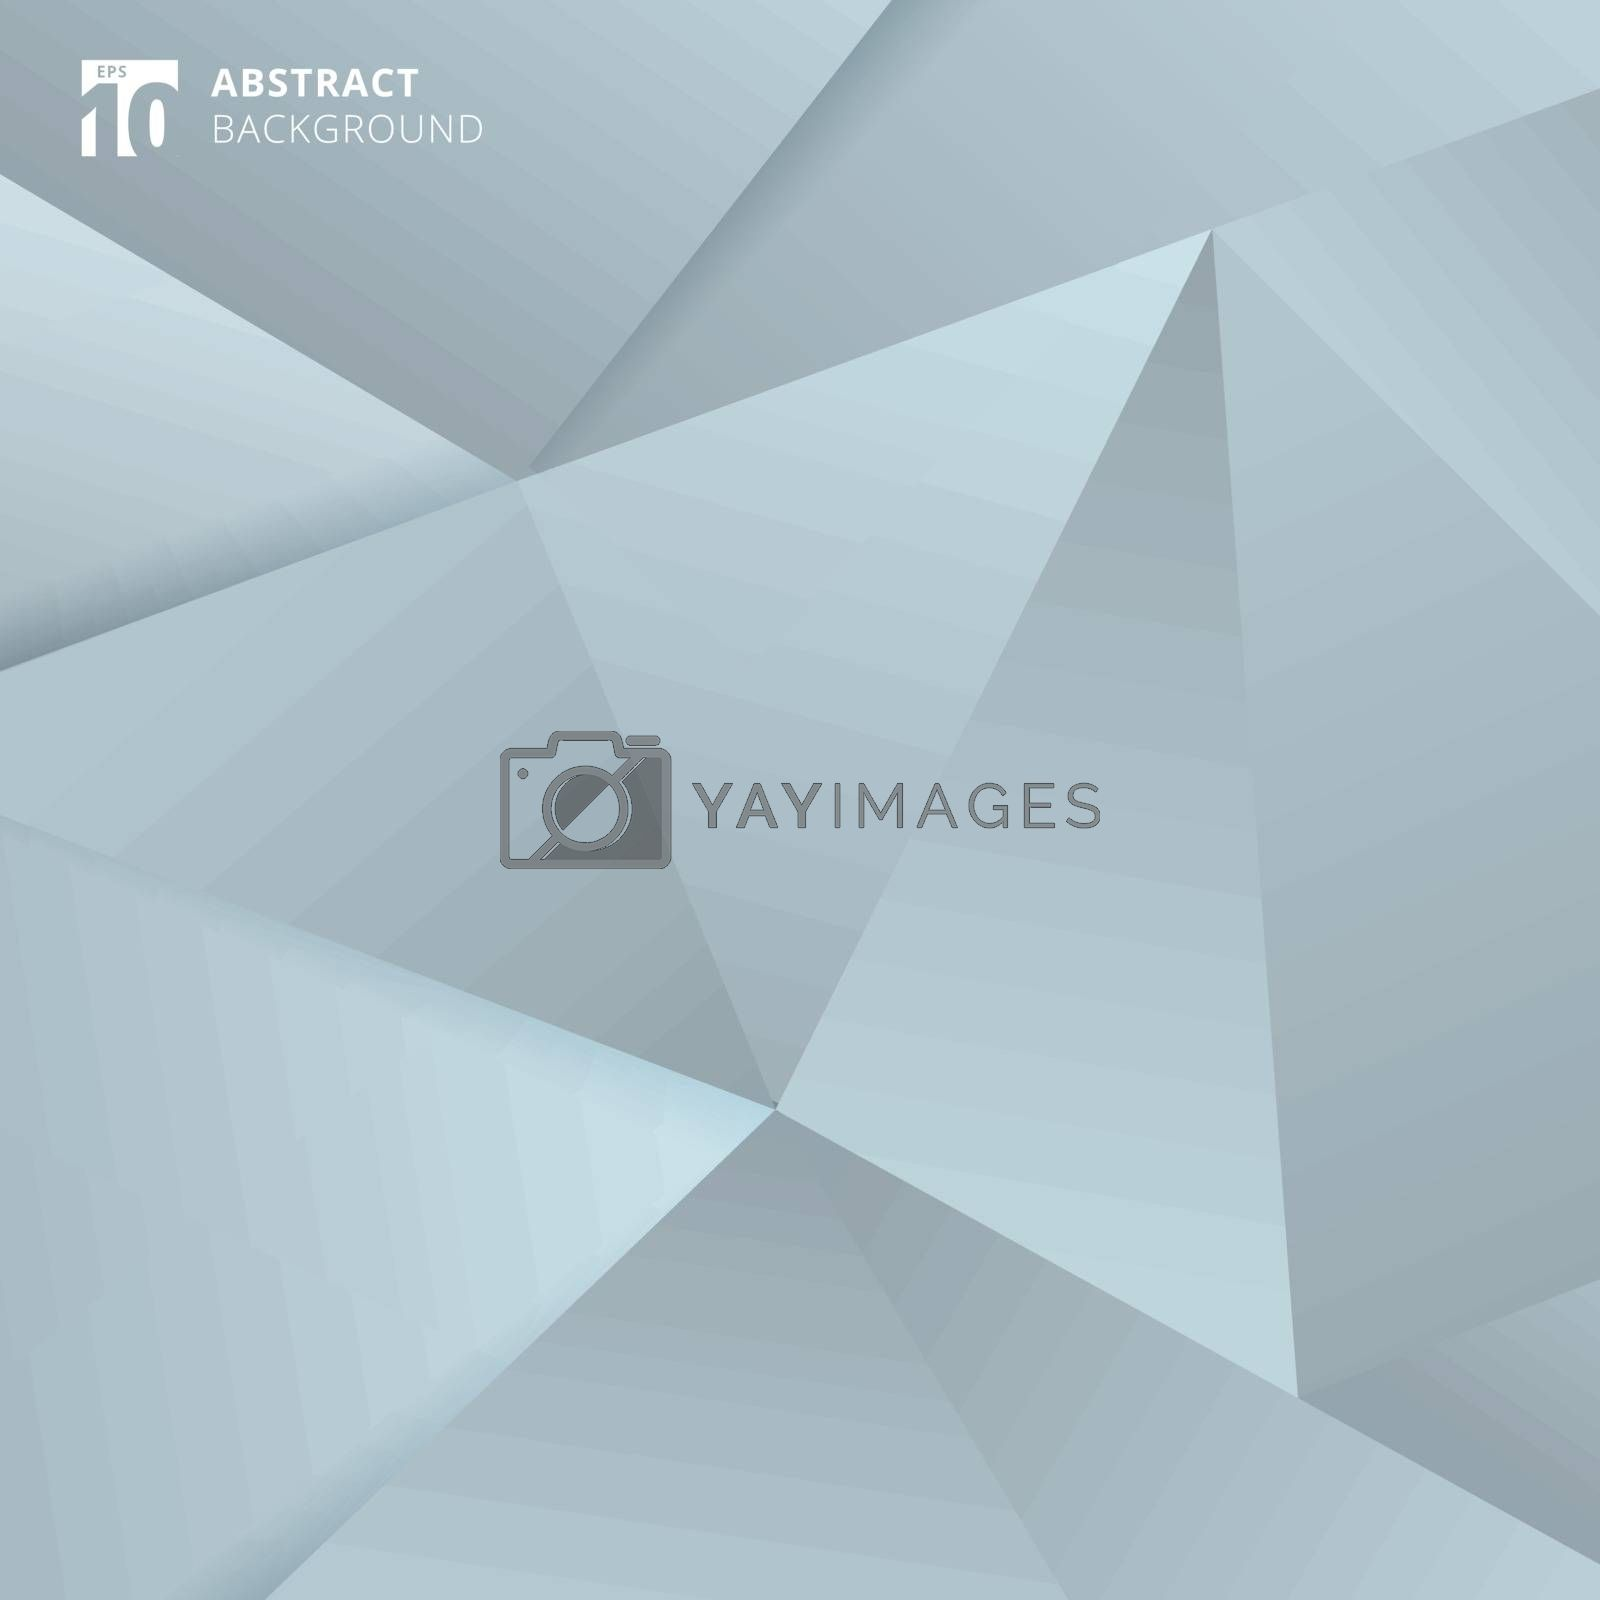 Abstract Gray and blue polygonal background. Vector illustration